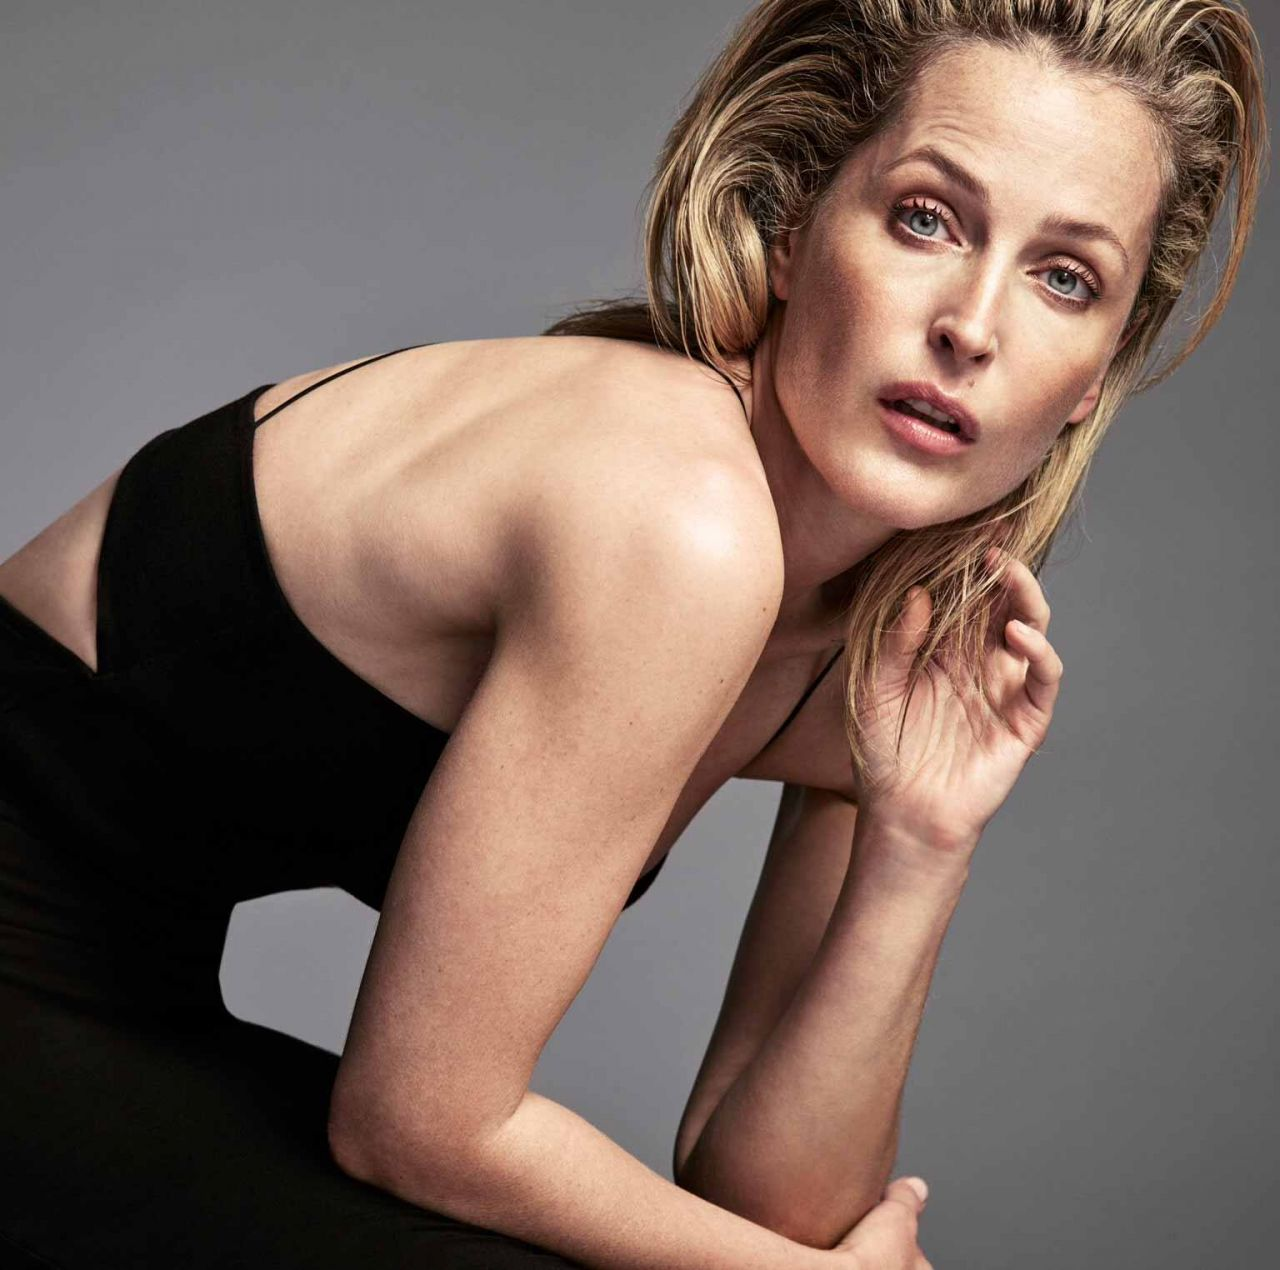 Gillian Anderson naked celebrity pictures - Celeb Nudes Photos